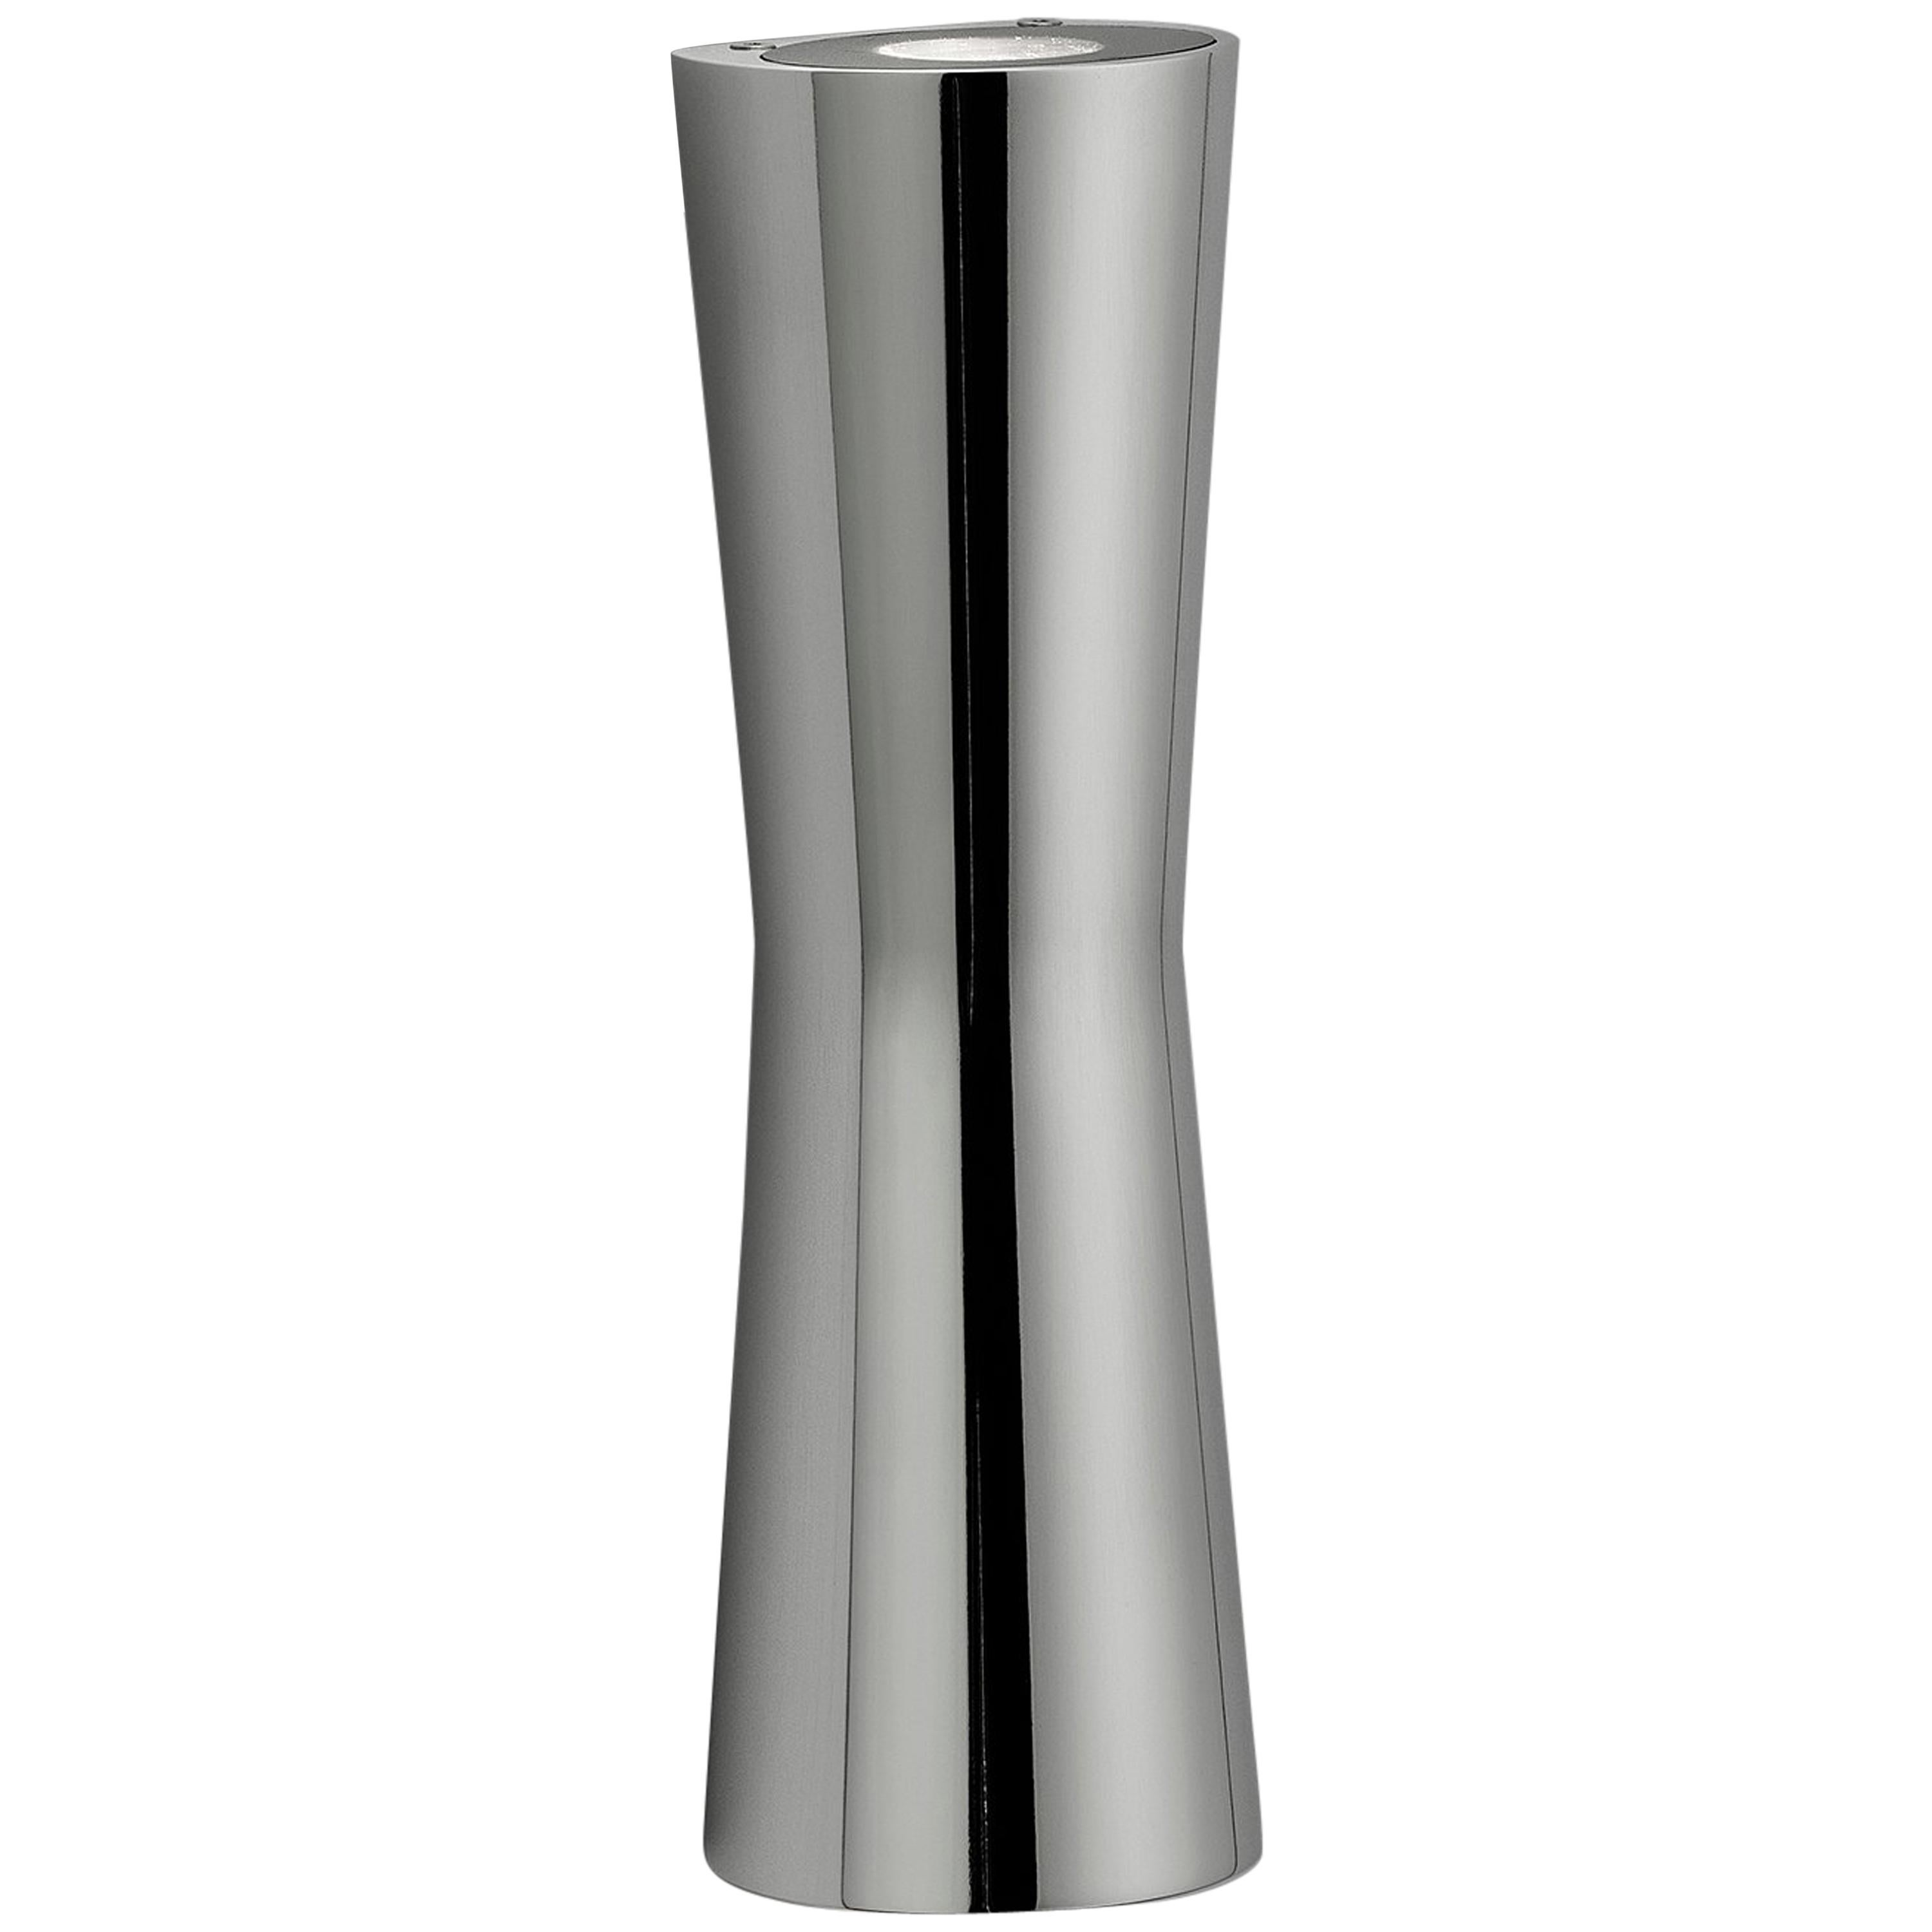 FLOS Clessidra 40° + 40° Indoor Wall Lamp in Chrome by Antonio Citterio